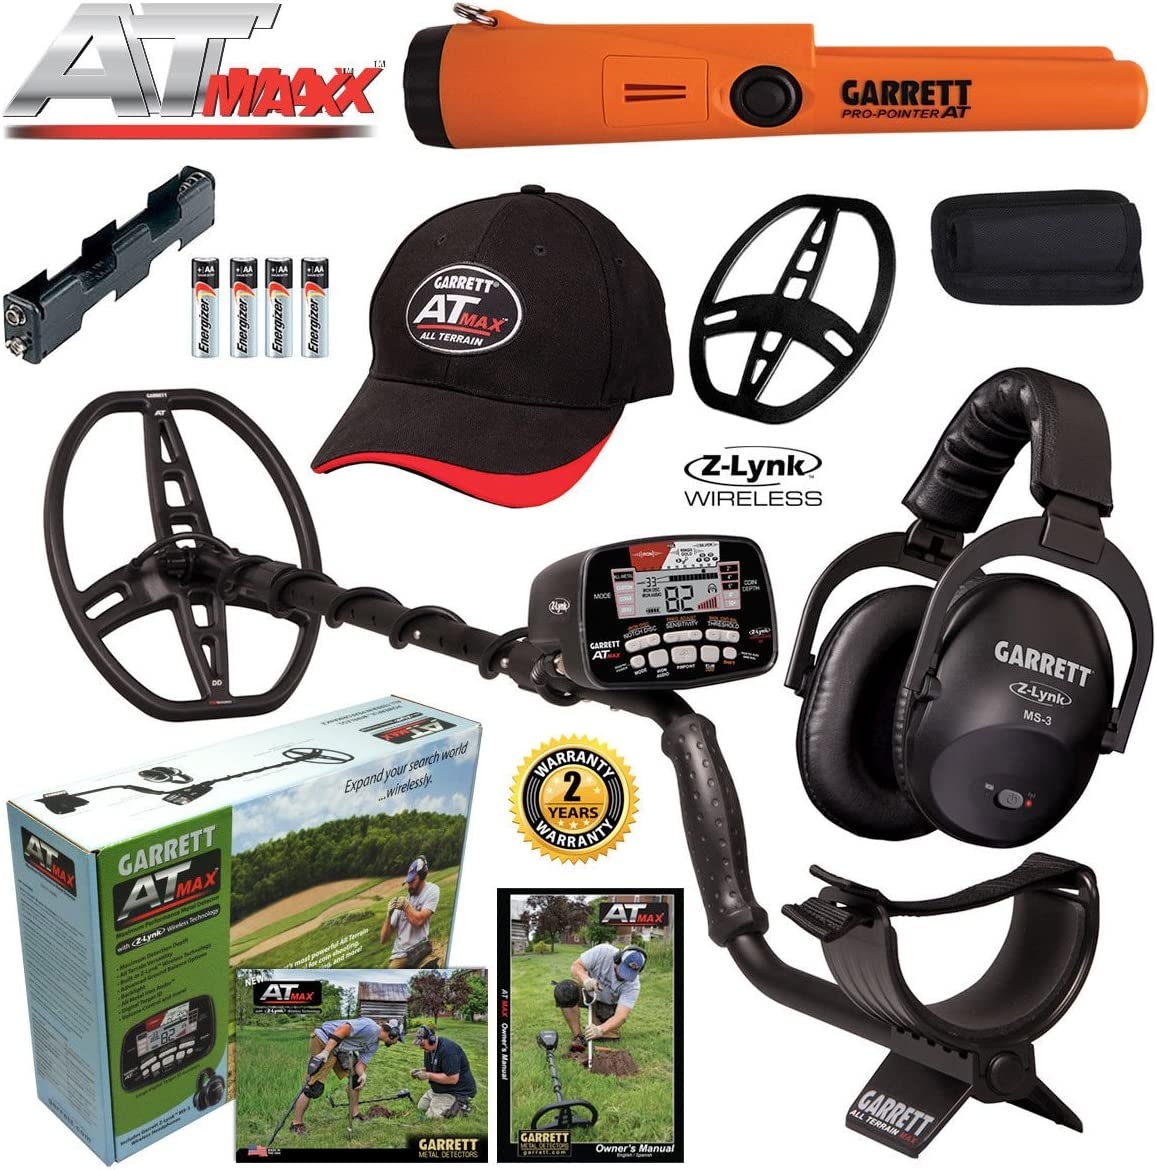 Garrett at MAX Metal Detector, MS-3 Headphones and Pro-Pointer at Pinpointer